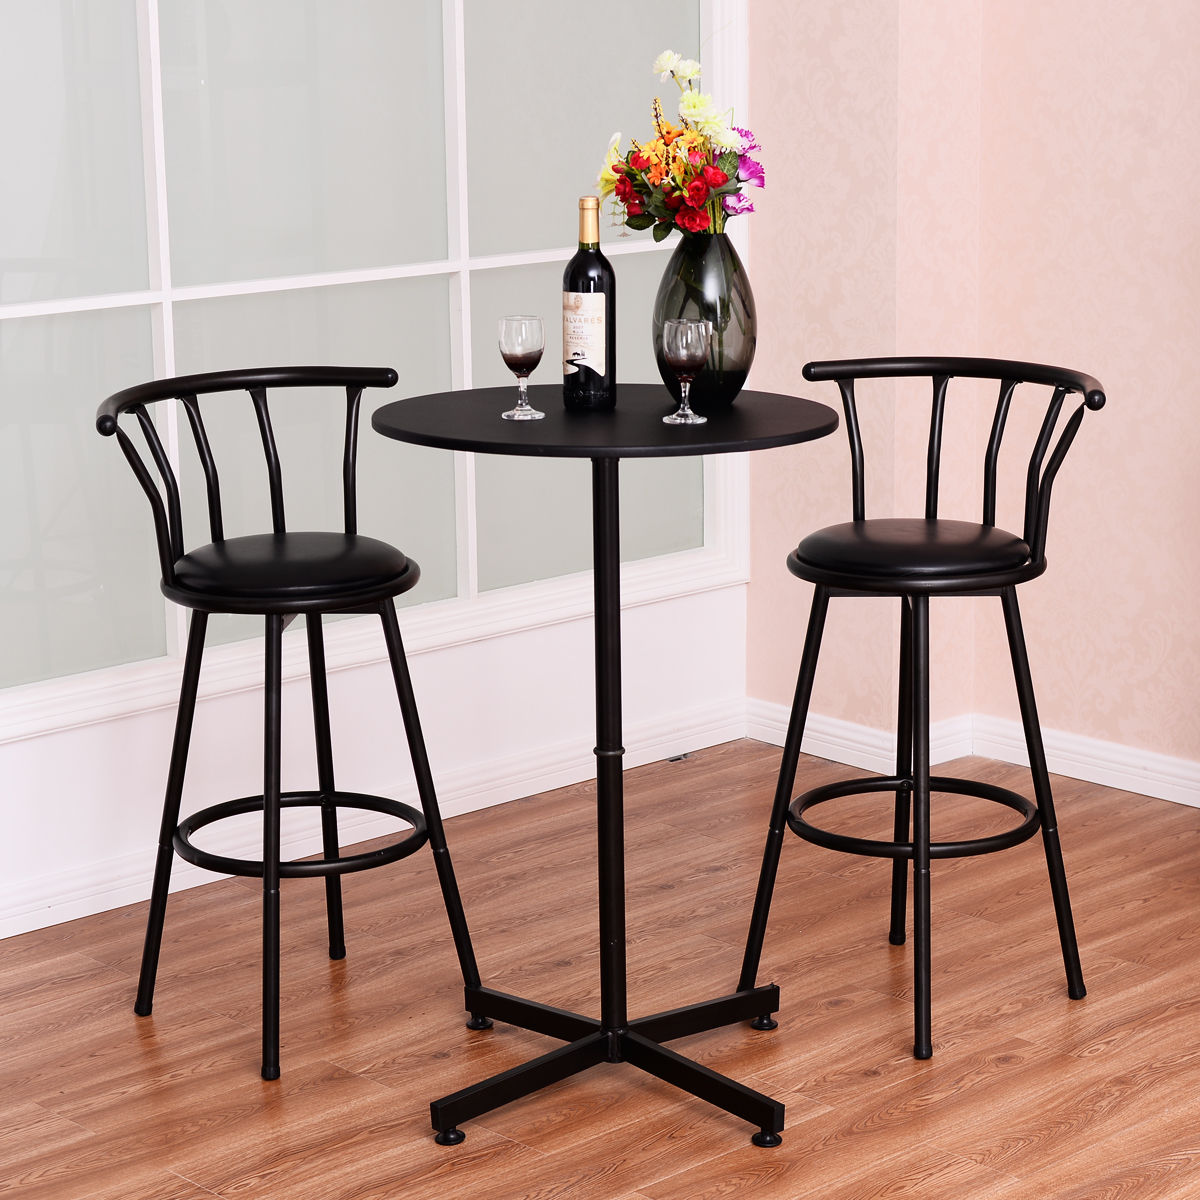 Costway 3 Piece Bar Table Set with 2 Stools Bistro Pub Kitchen Dining Furniture Black & Pub Table Sets